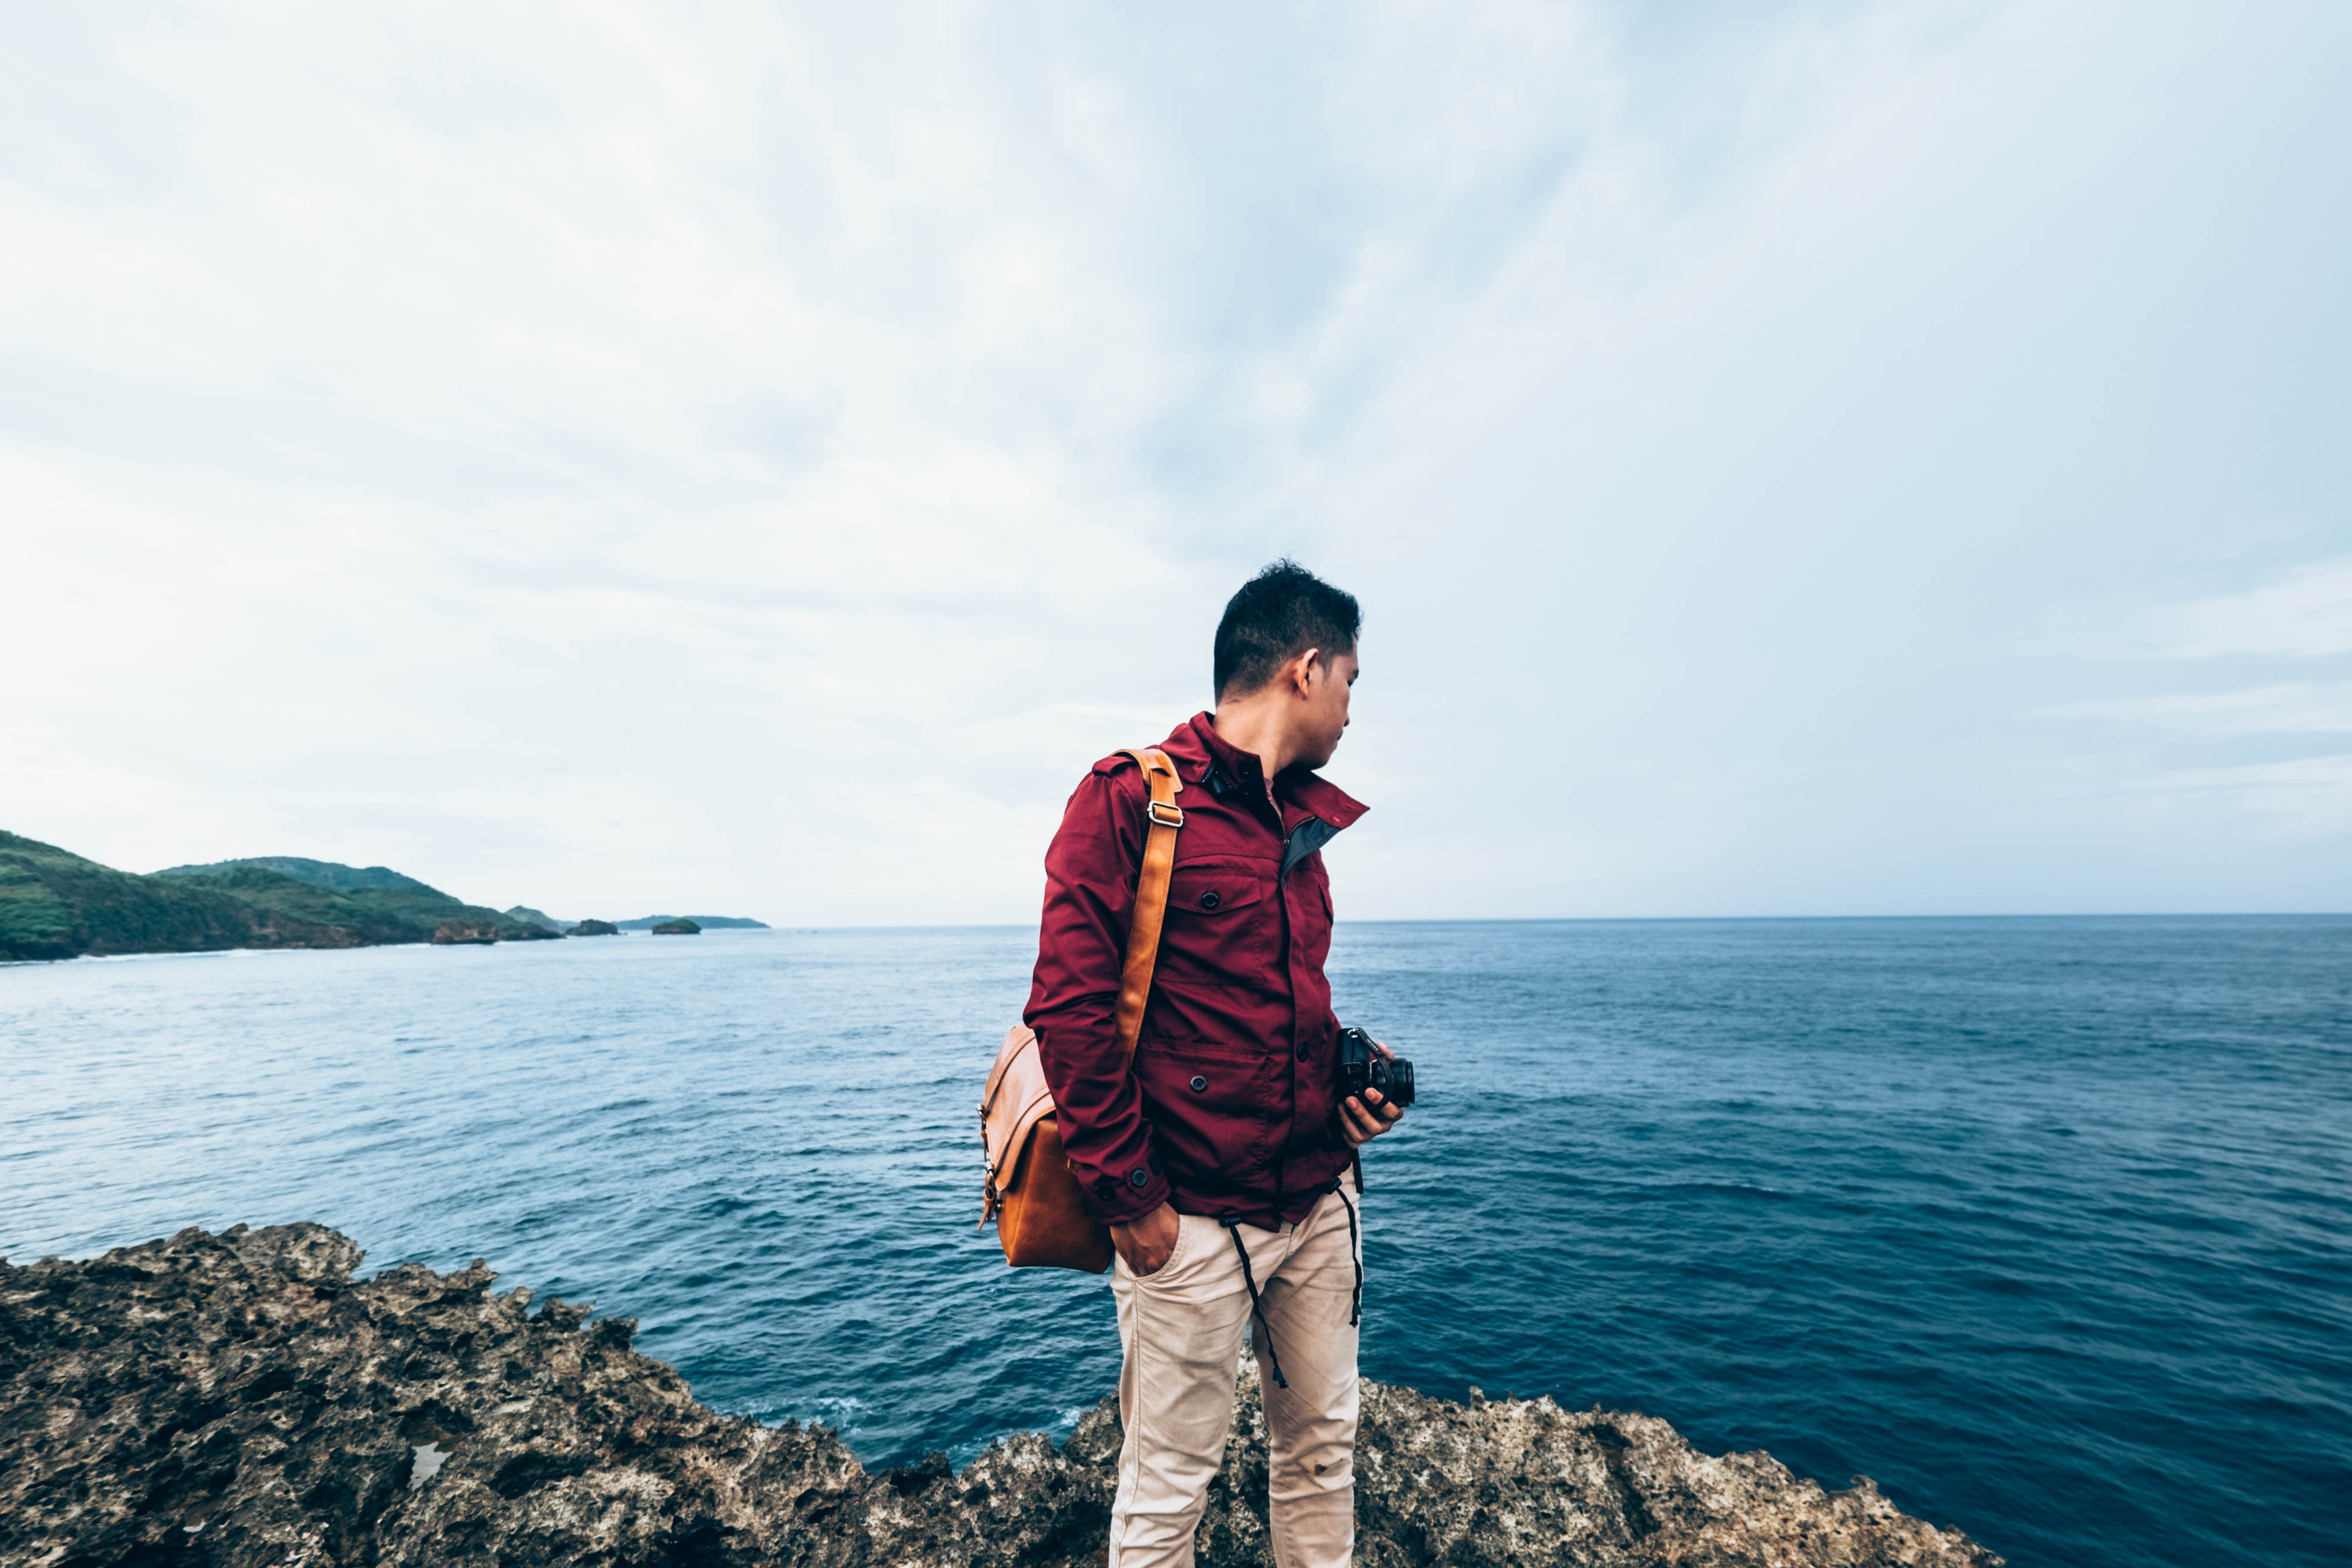 man wearing red zip-up jacket standing on top of rocky cliff beside body of water during daytime